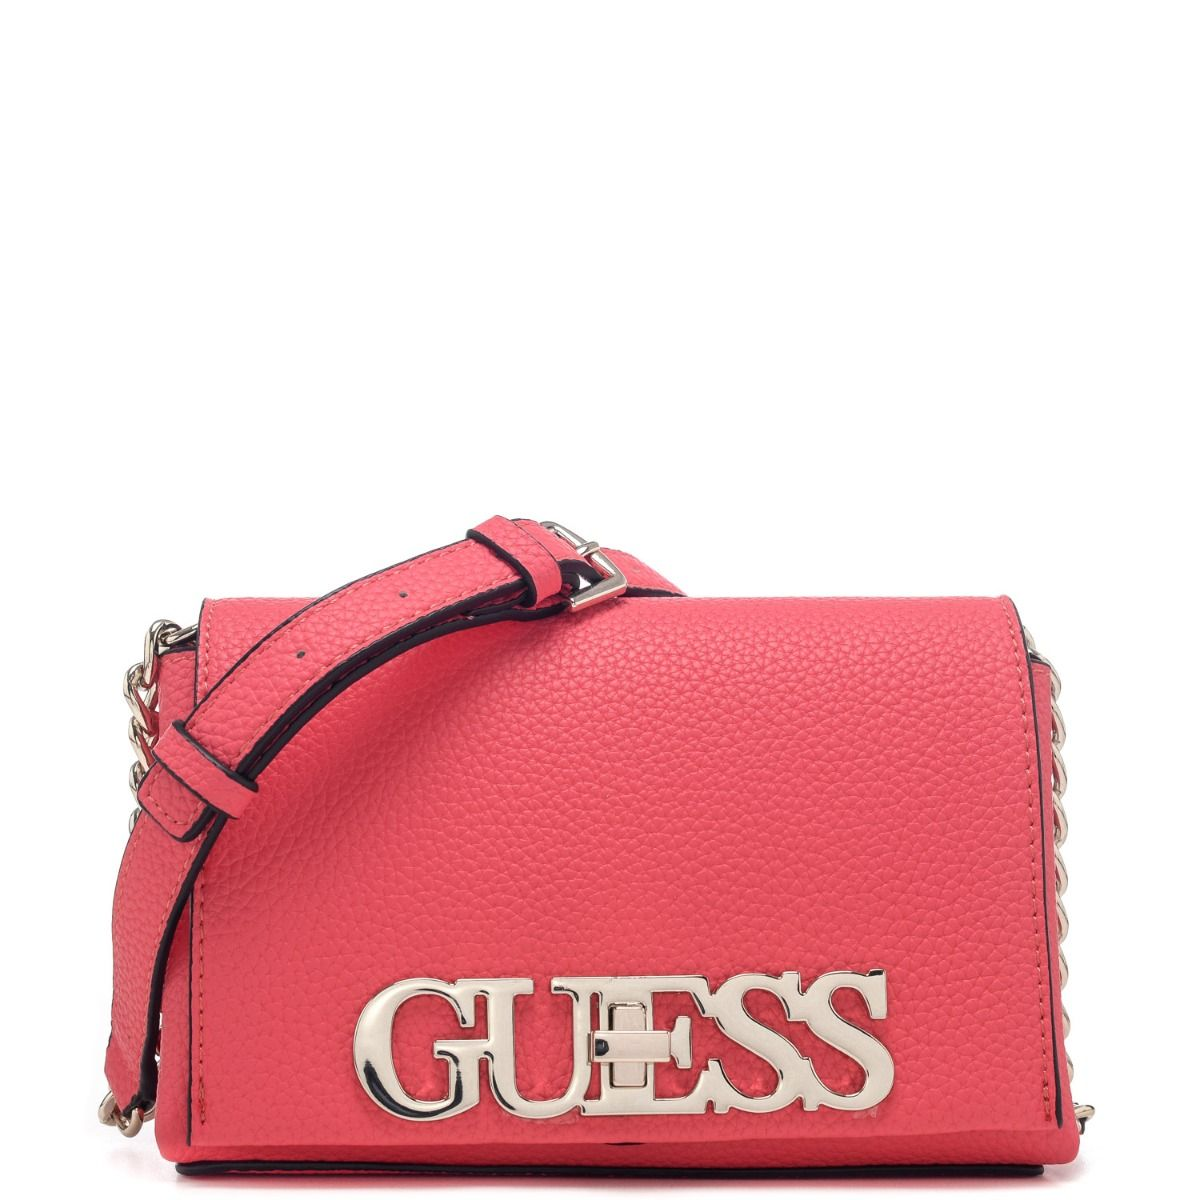 Guess borsa a tracolla Uptown Chic HWVG73 01780